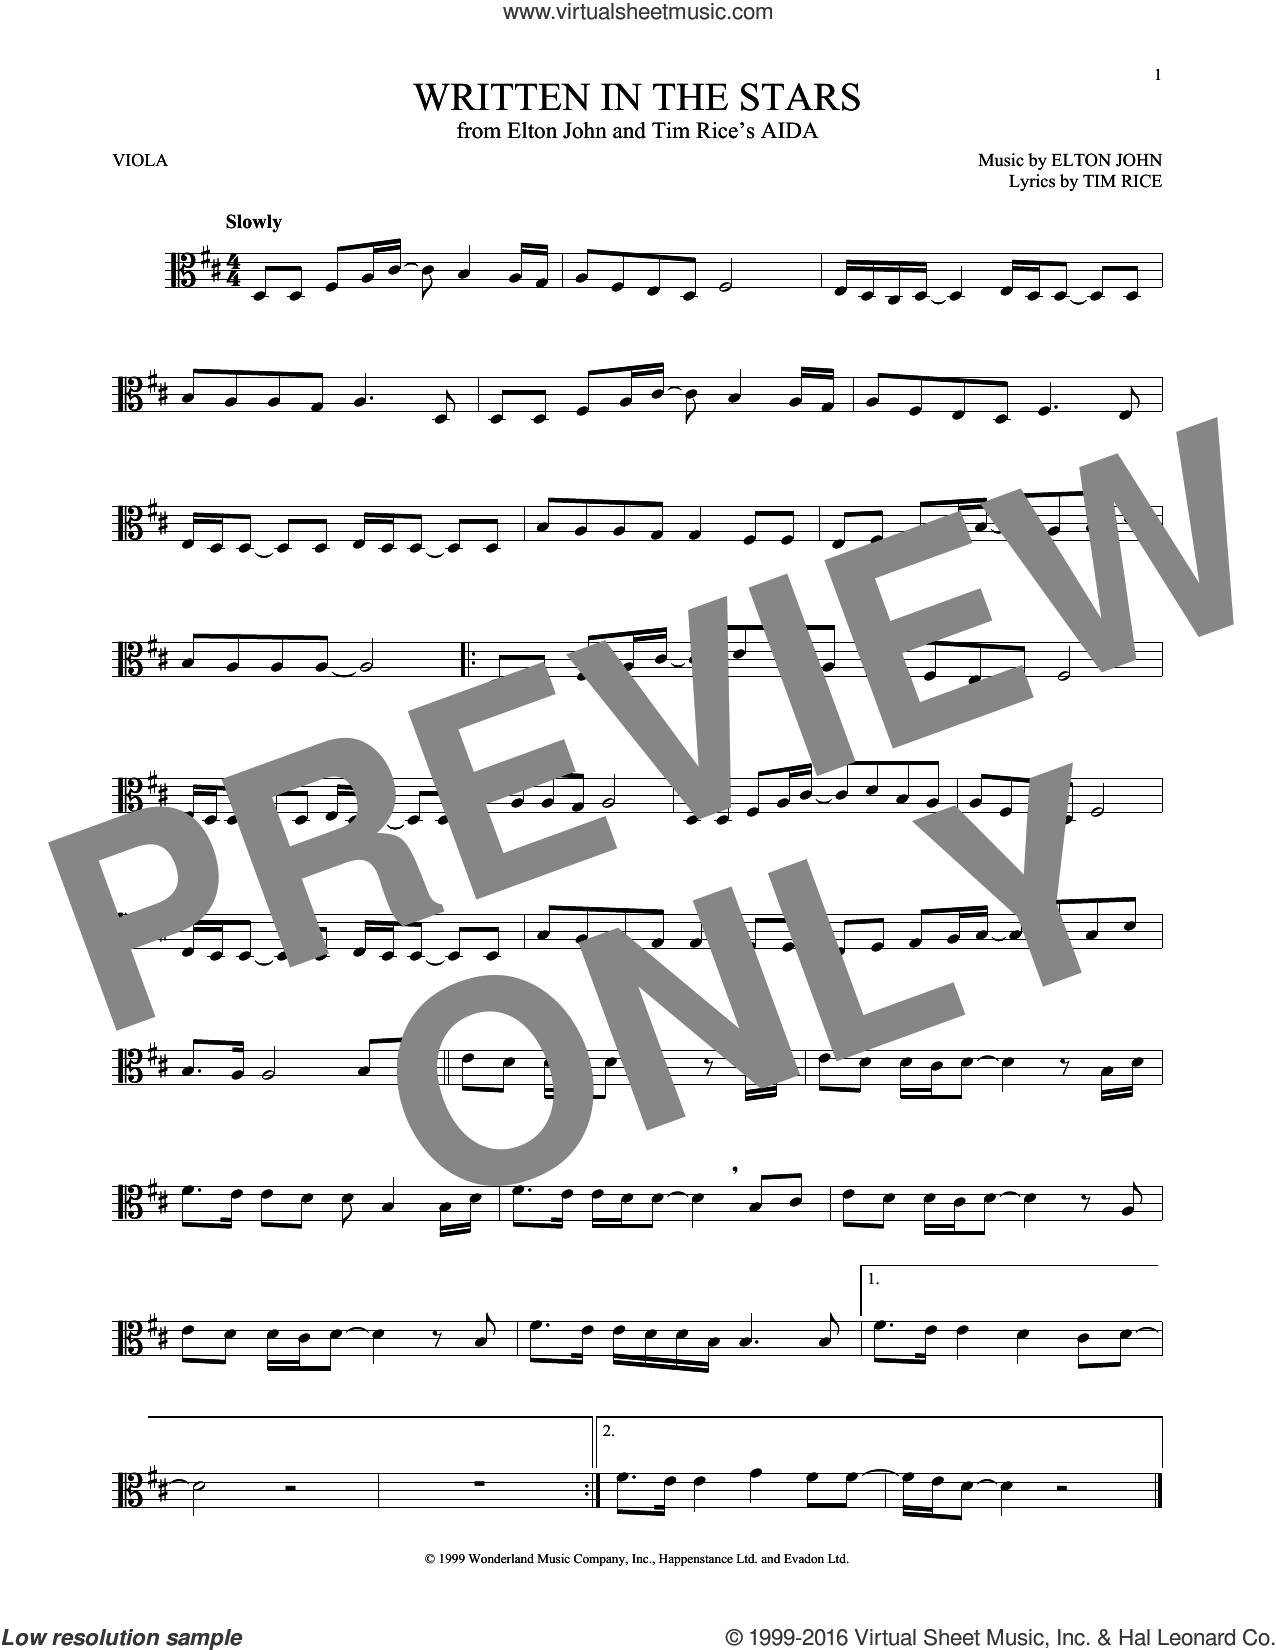 Written In The Stars sheet music for viola solo by Elton John and Tim Rice, intermediate skill level